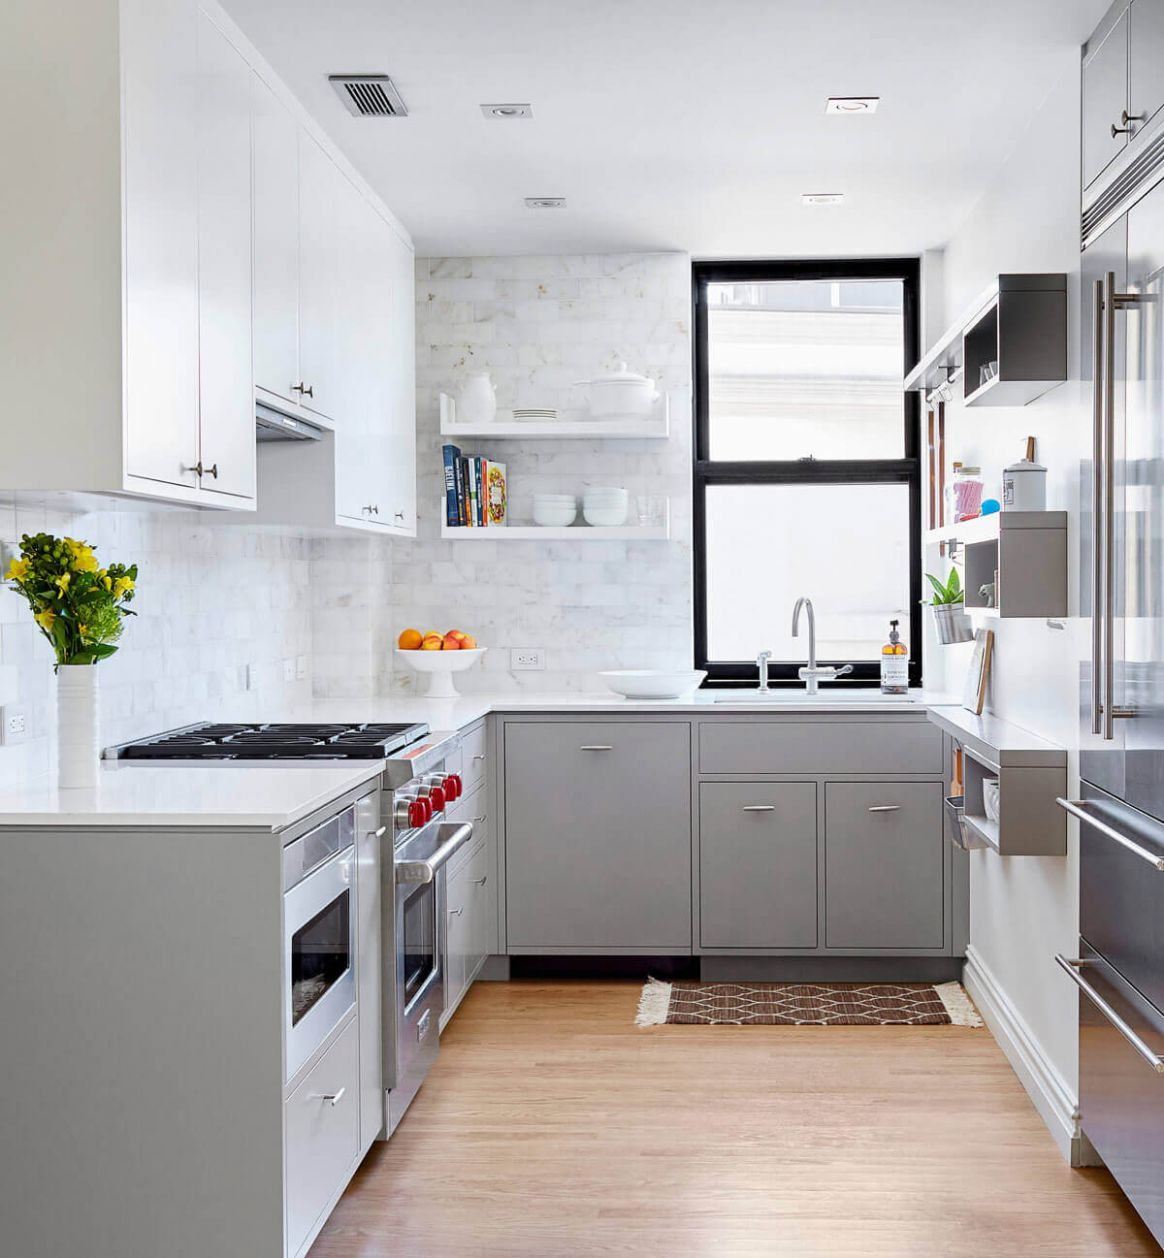 9 Creative Grey Kitchen Cabinet Ideas for Your Kitchen - kitchen ideas with gray cabinets